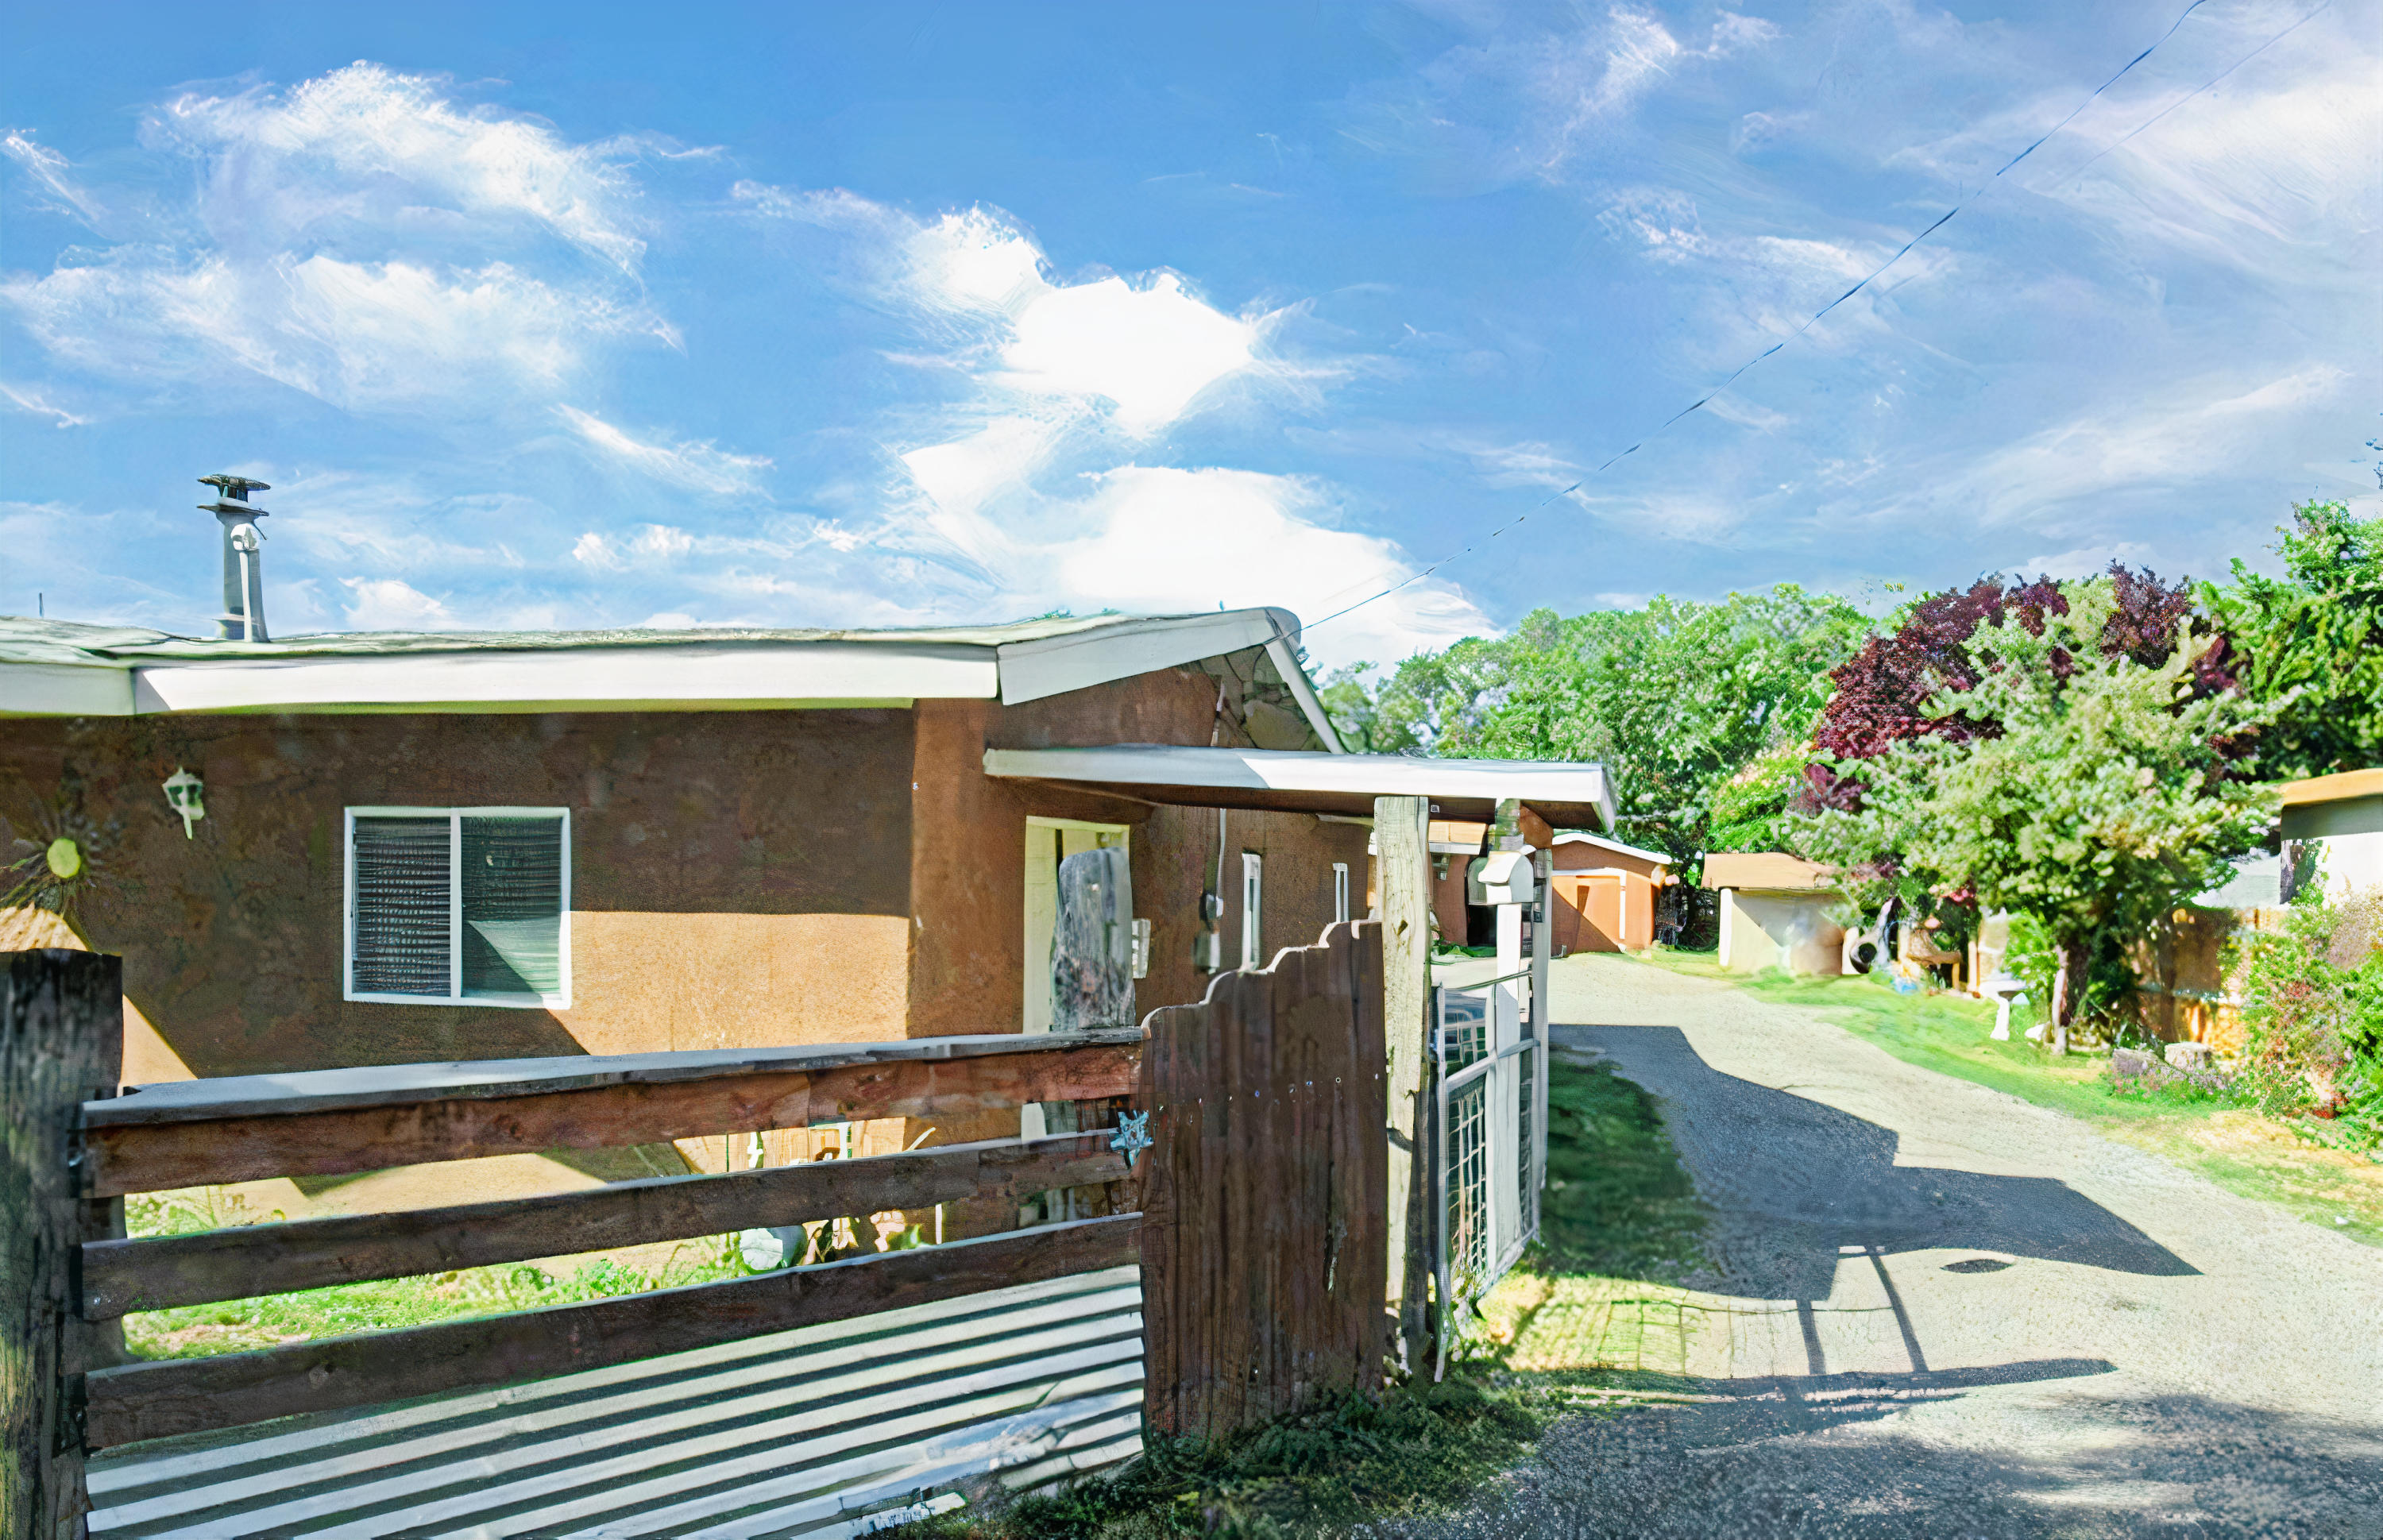 18A Gurule Road Property Photo - Peralta, NM real estate listing